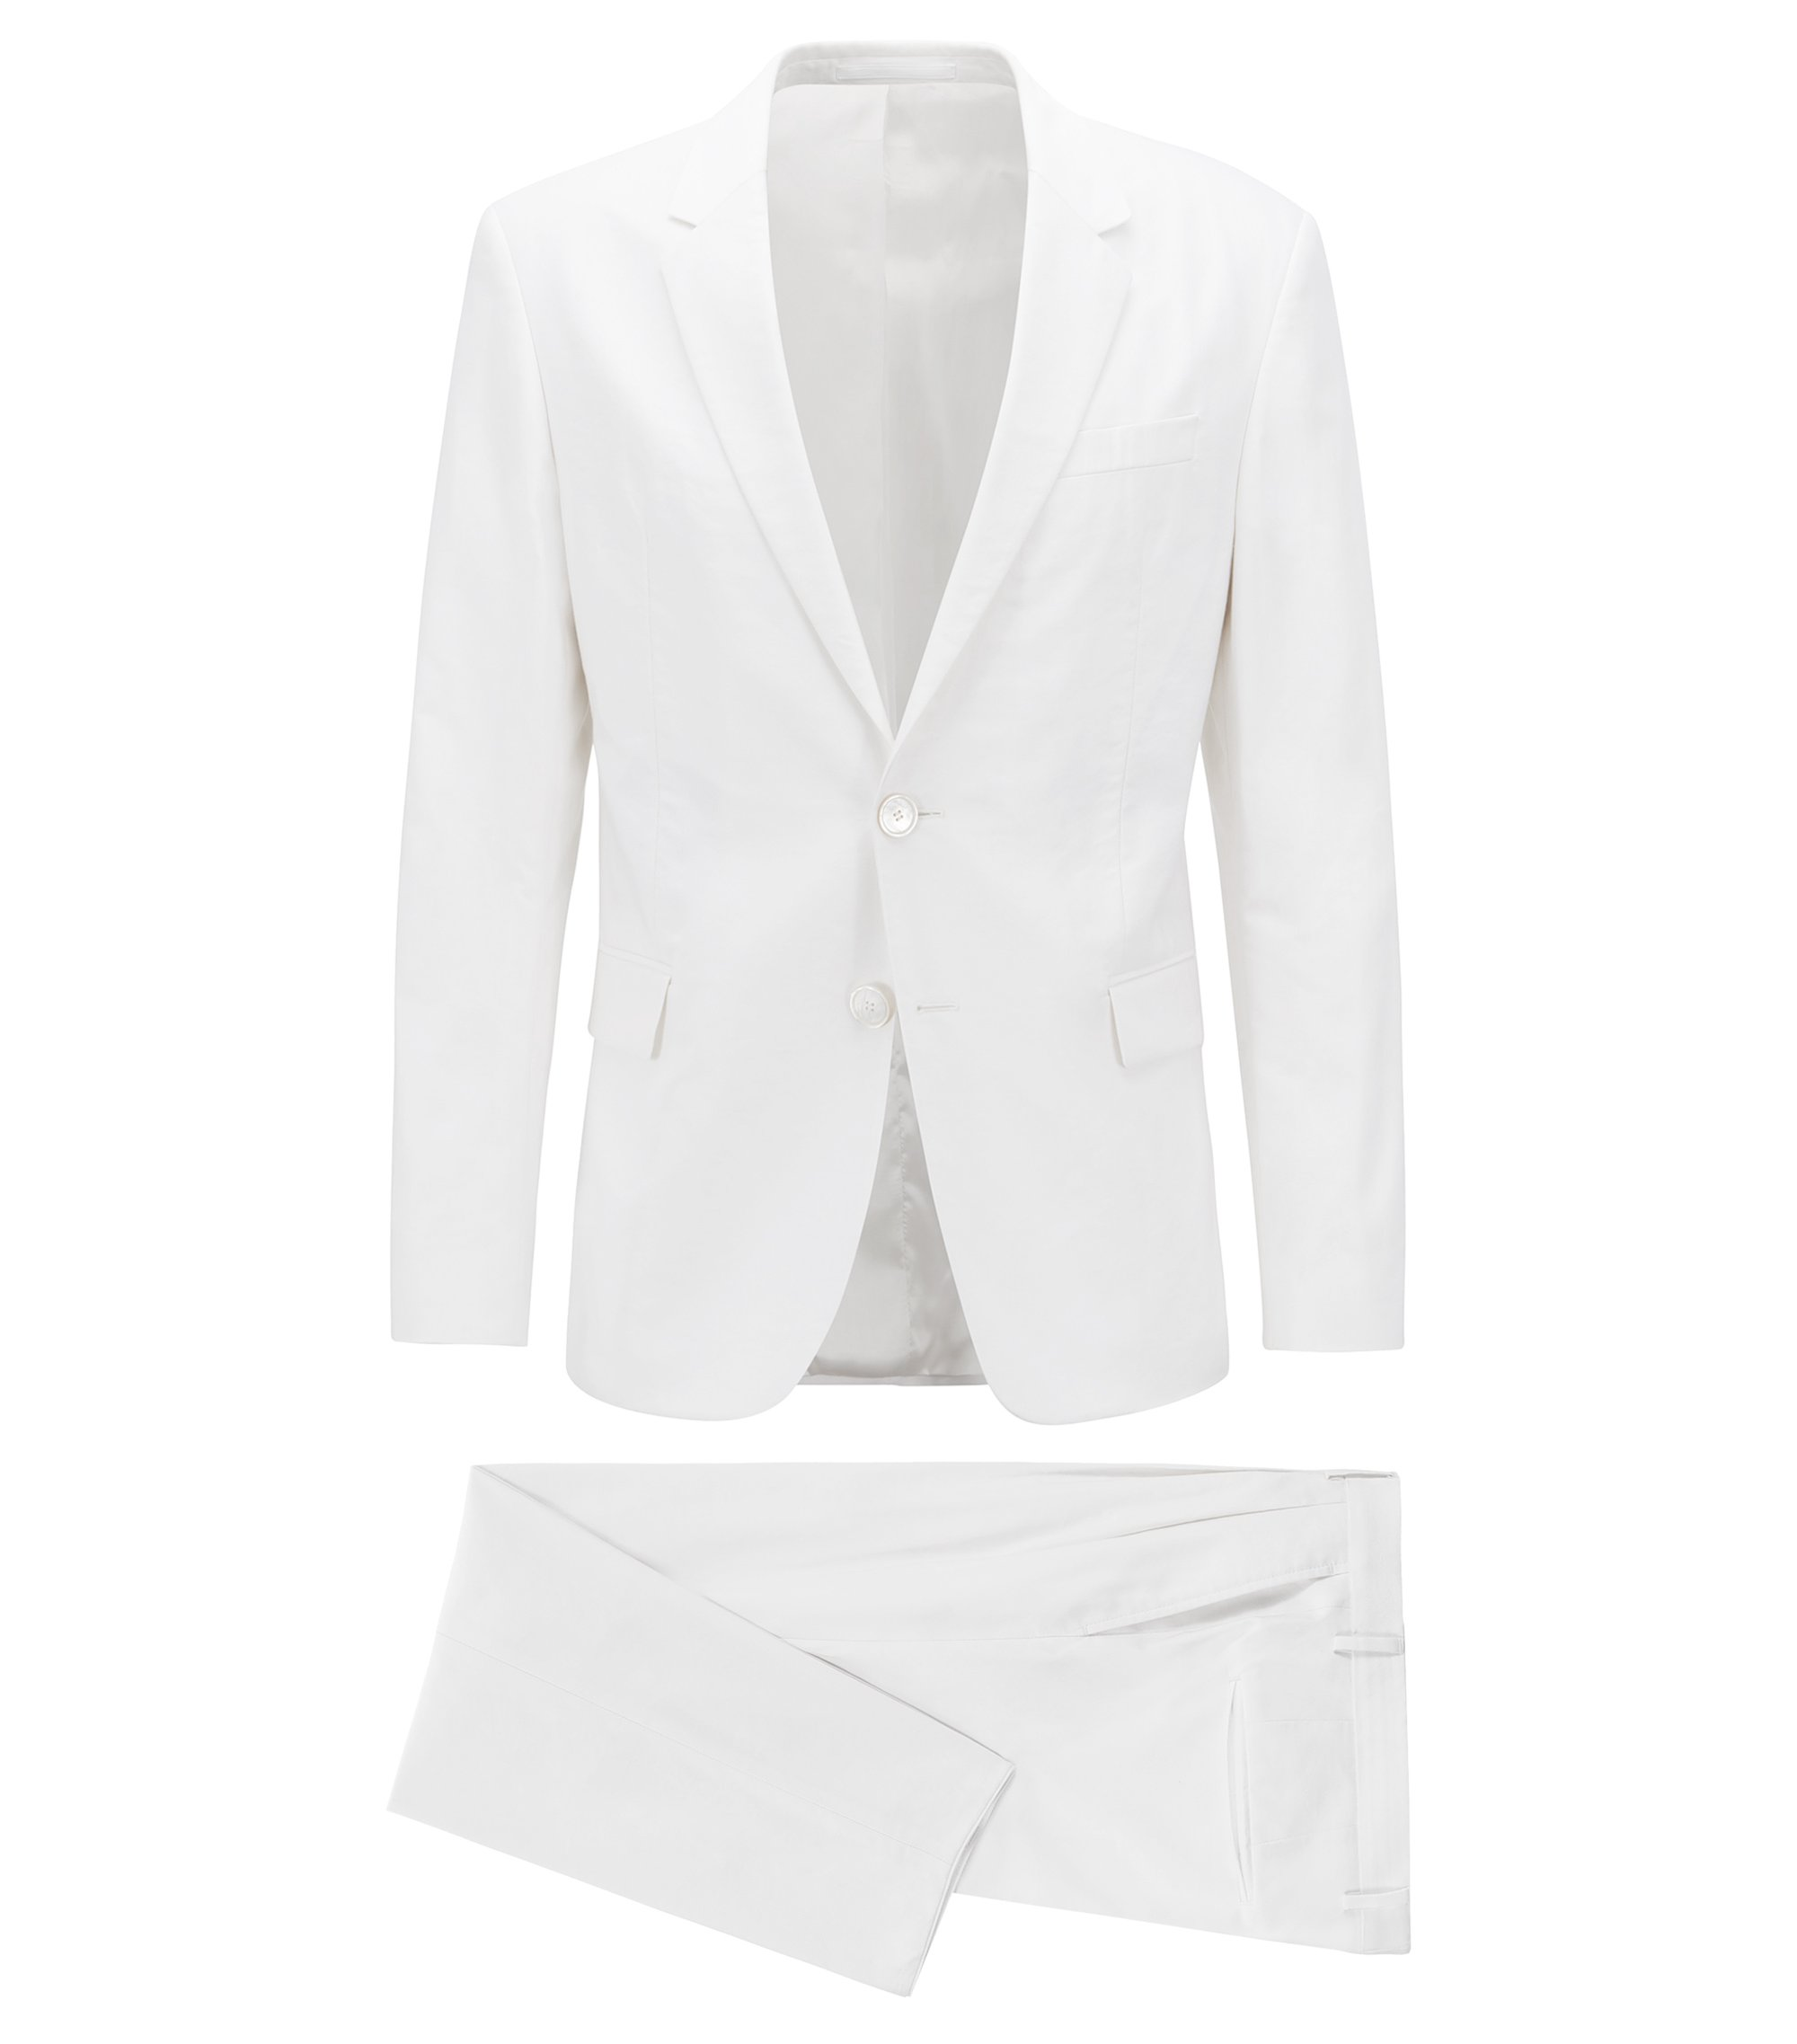 Limited Edition iconic white suit, White